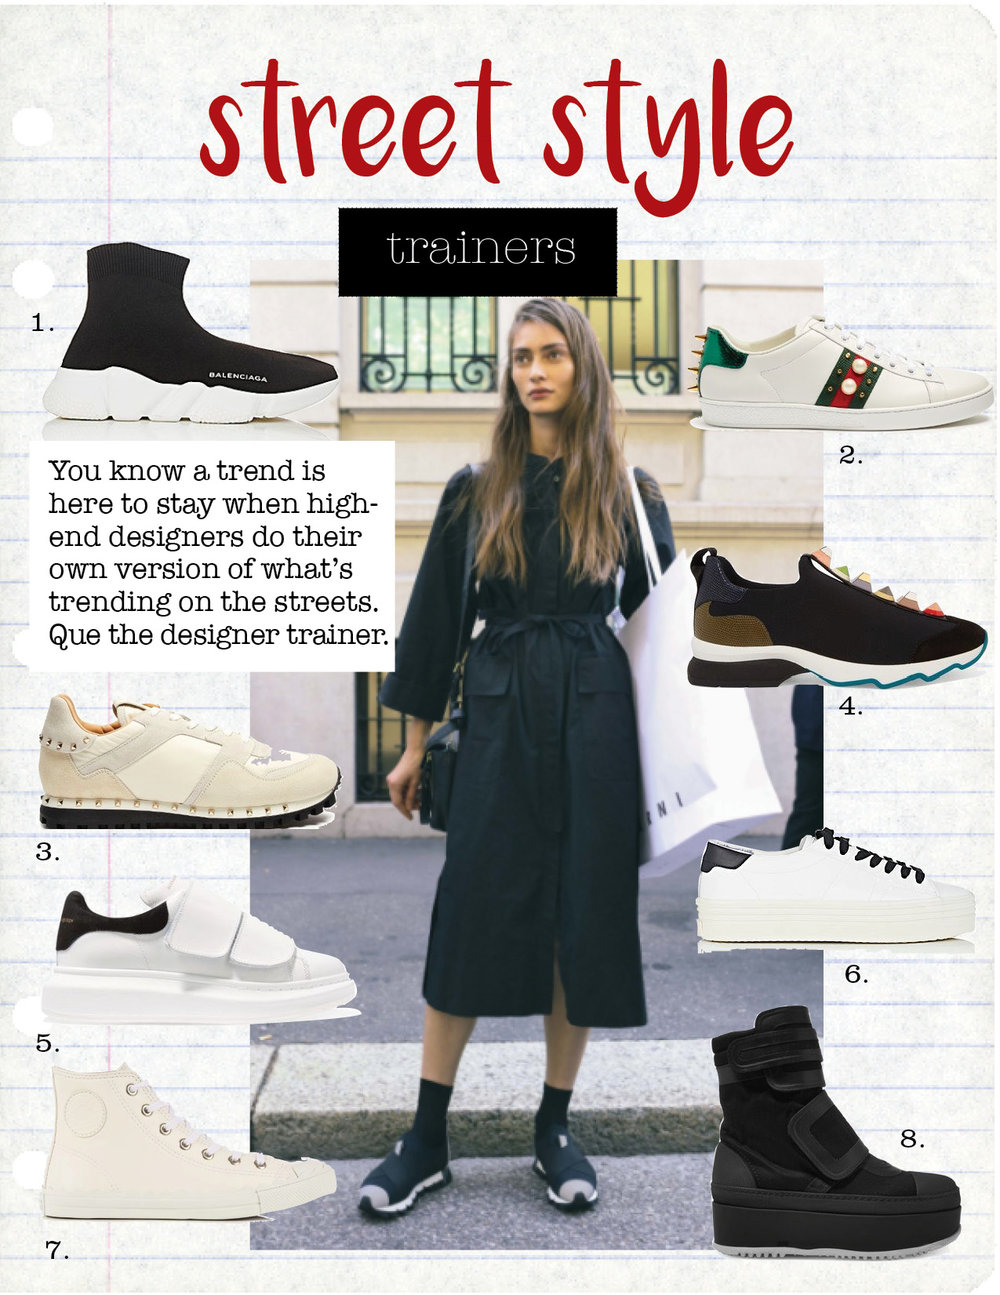 1. Balenciaga knit high-top sneakers, $545, barneys.com  2. gucci new ace stud-embroidered leather trainers, $537,  matchesfashion.com  3. valentino rockrunner suede-panelled trainers, $656,  matchesfashionfashion.com  4. fendi embellished suede and leather trimmed noeprene sneakers, $900,  net-a-porter.com  5. alexander mcqueen leather and suede exaggerated-sole sneakers, $575,  net-a-porter.com  6. saint laurent court classic leather platform sneakers, $595,  barneys.com  7. chloe kyle high-top leather trainers, $437,  matchesfashion.com  8. marni leather trimmed twill platform sneakers, $1130,  net-a-porter.com